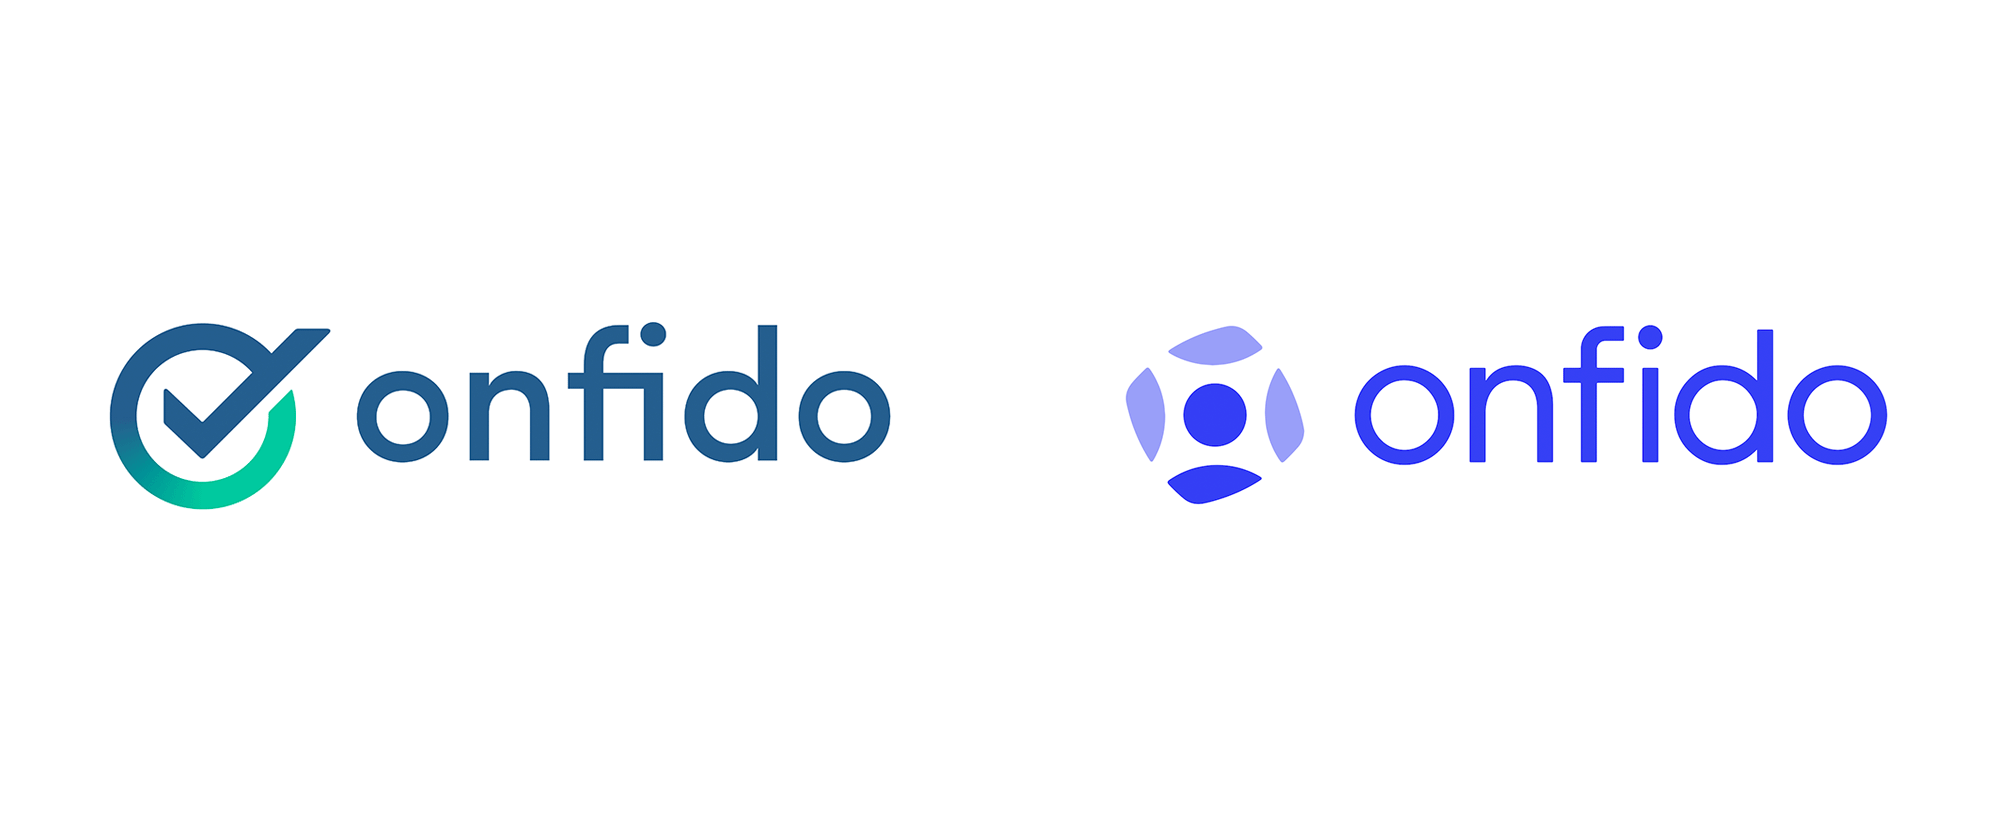 New Logo and Identity for Onfido by Koto